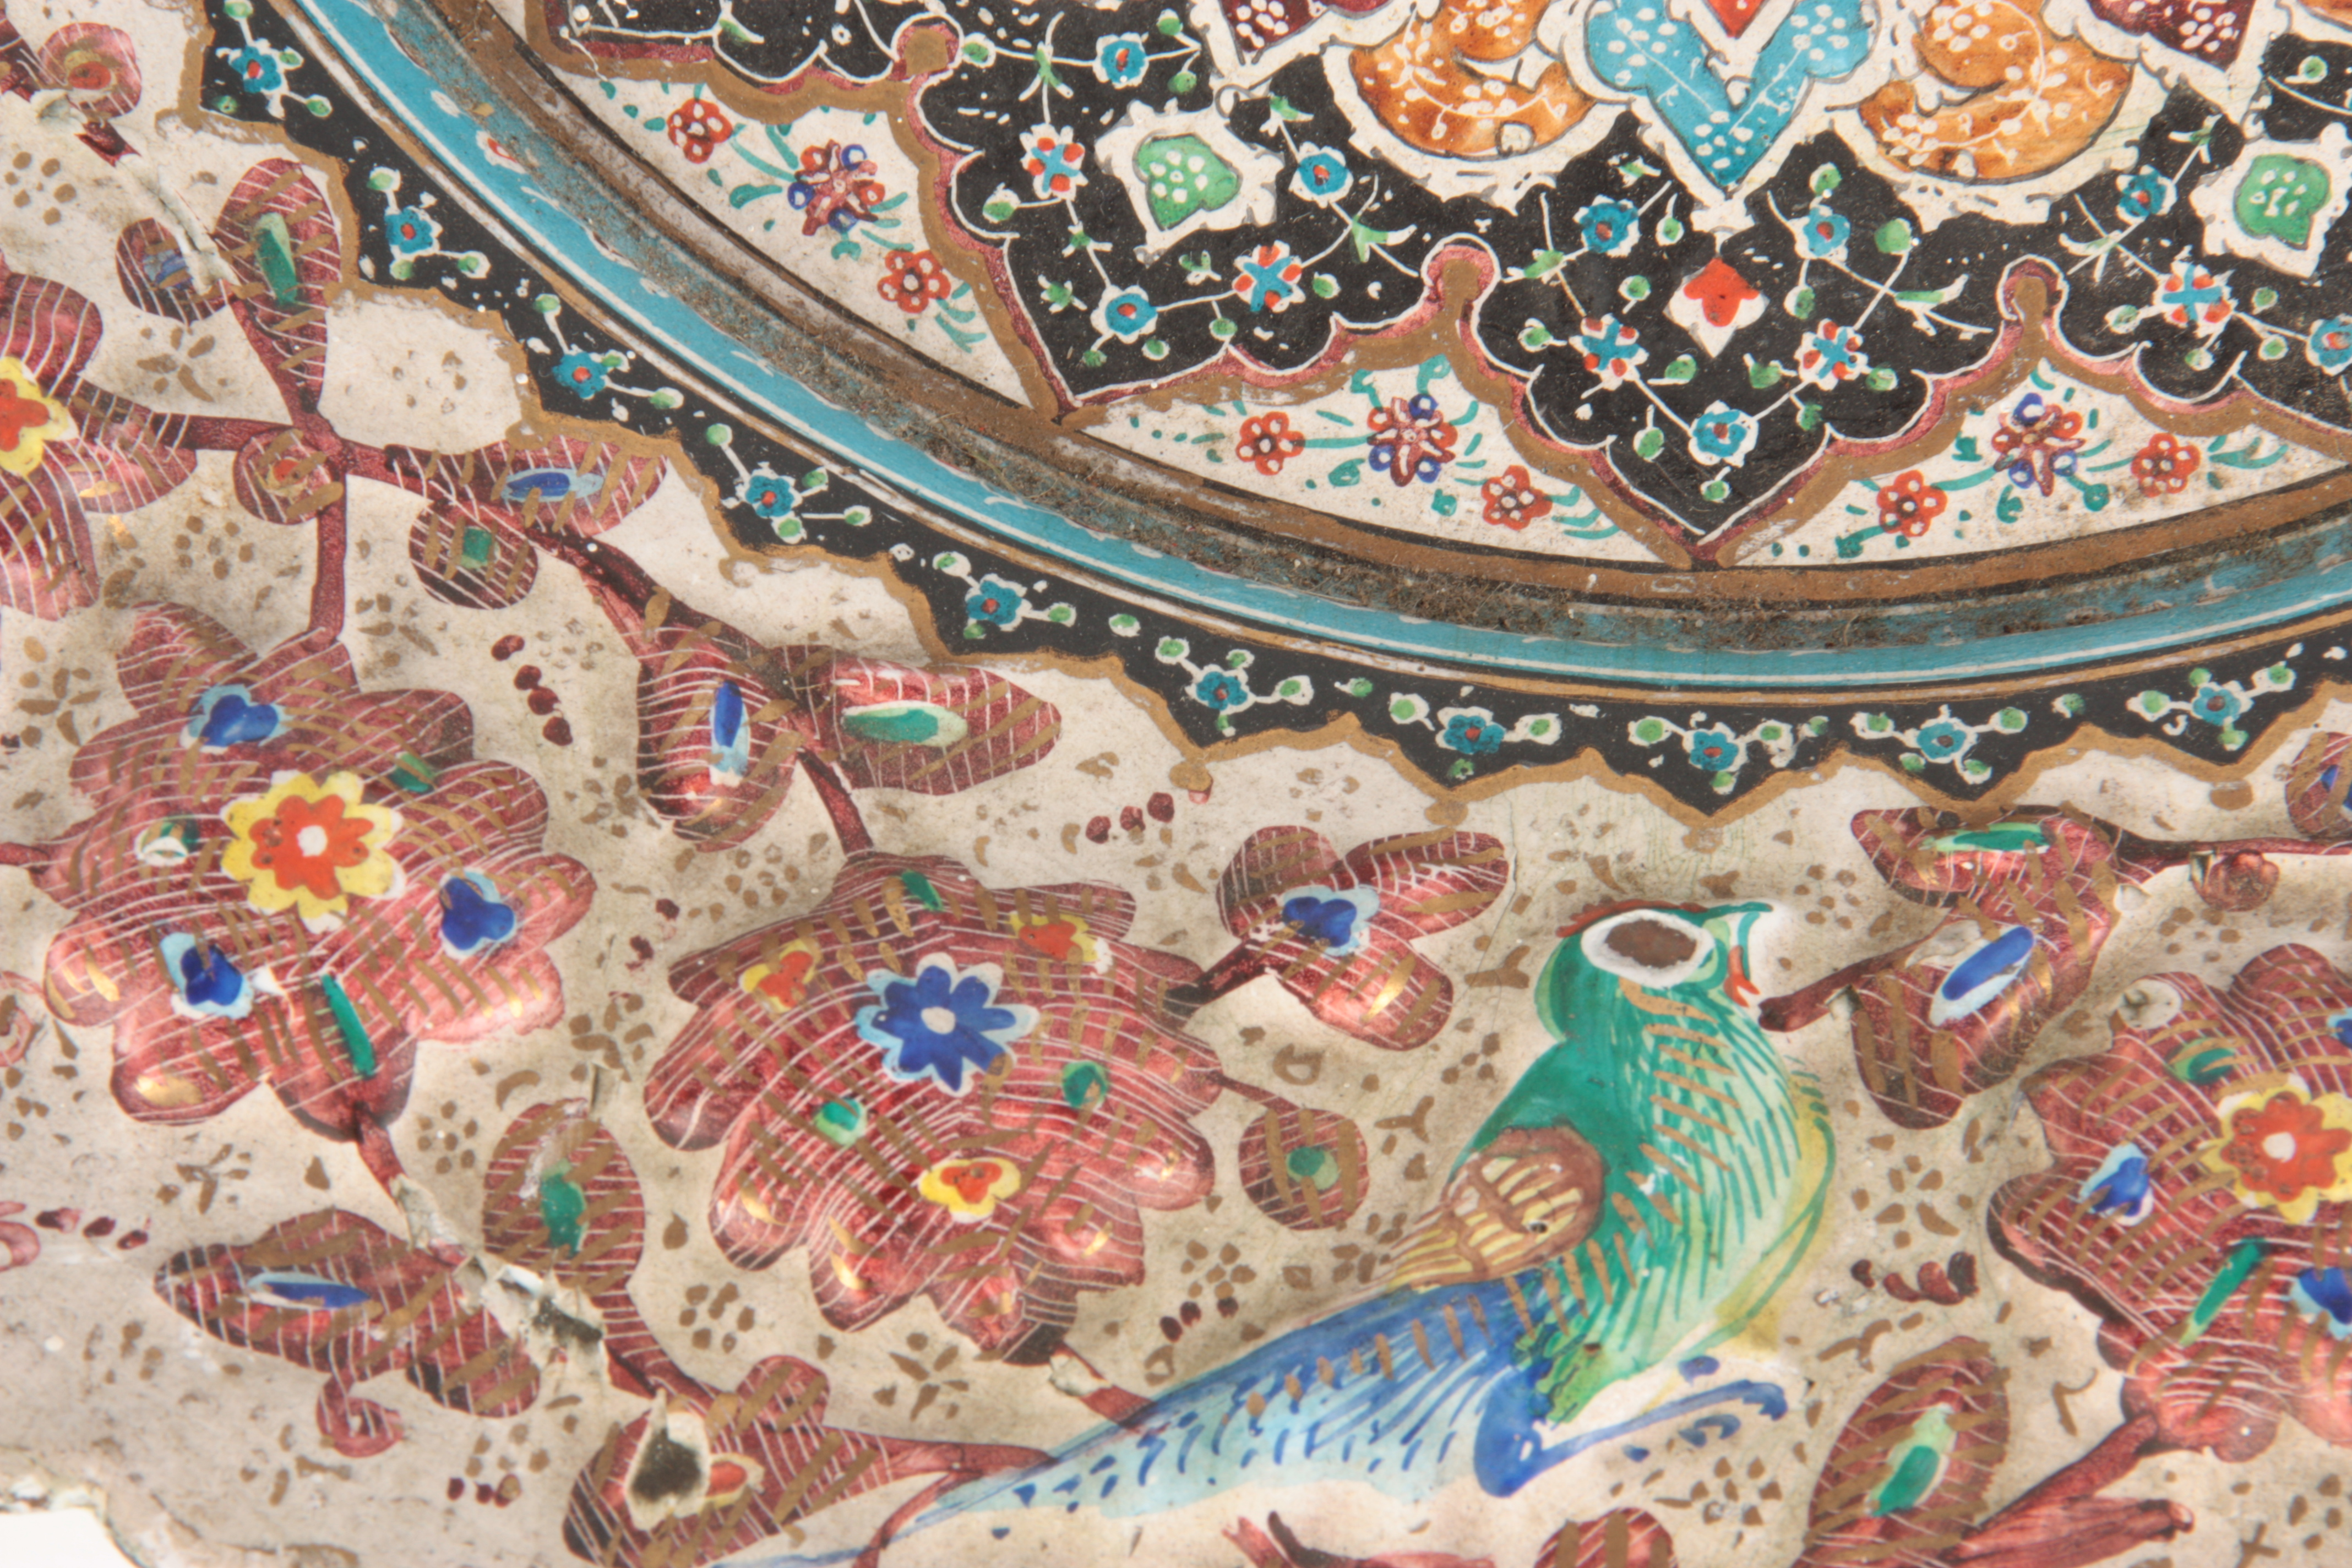 A 19TH CENTURY ISLAMIC ENAMEL PLATE finely decorated with a reliefwork border decorated with birds - Image 4 of 5